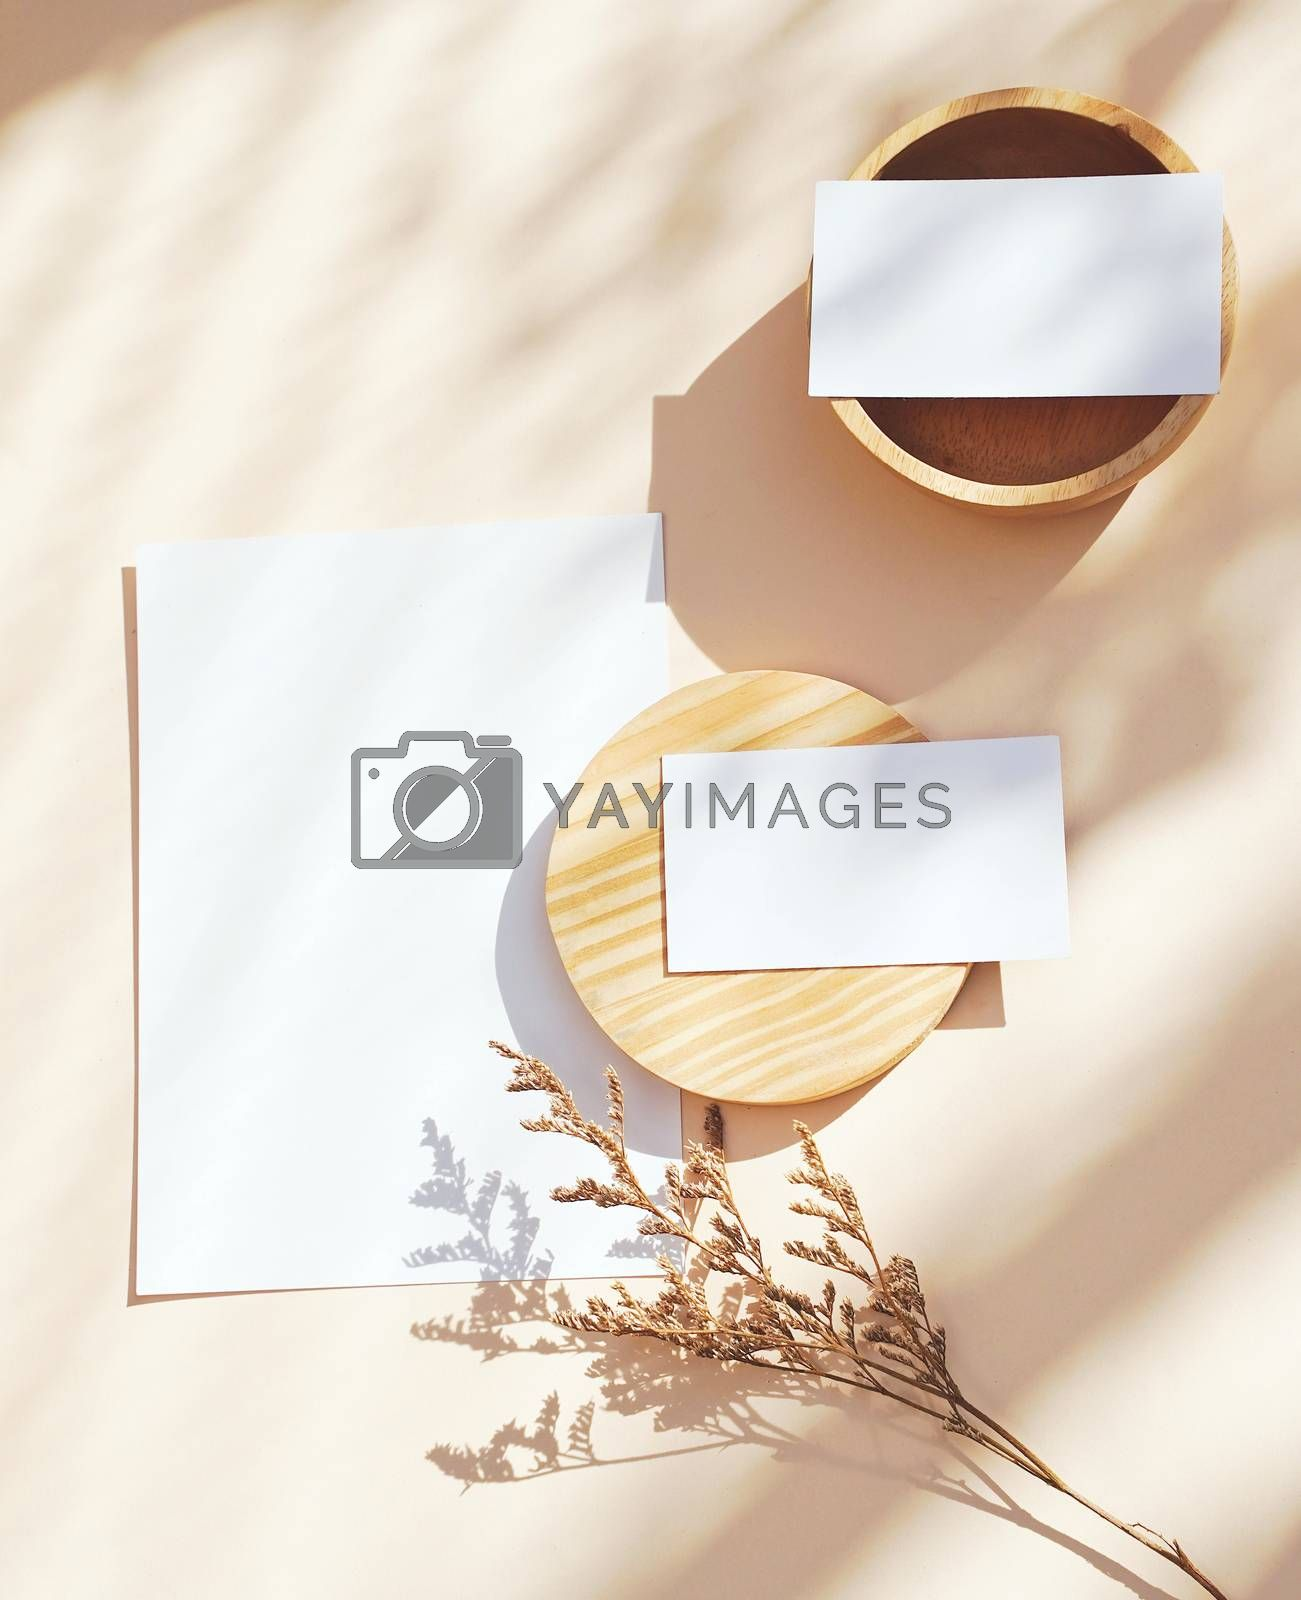 Royalty free image of Flat lay of branding identity business name card on yellow backg by nuchylee